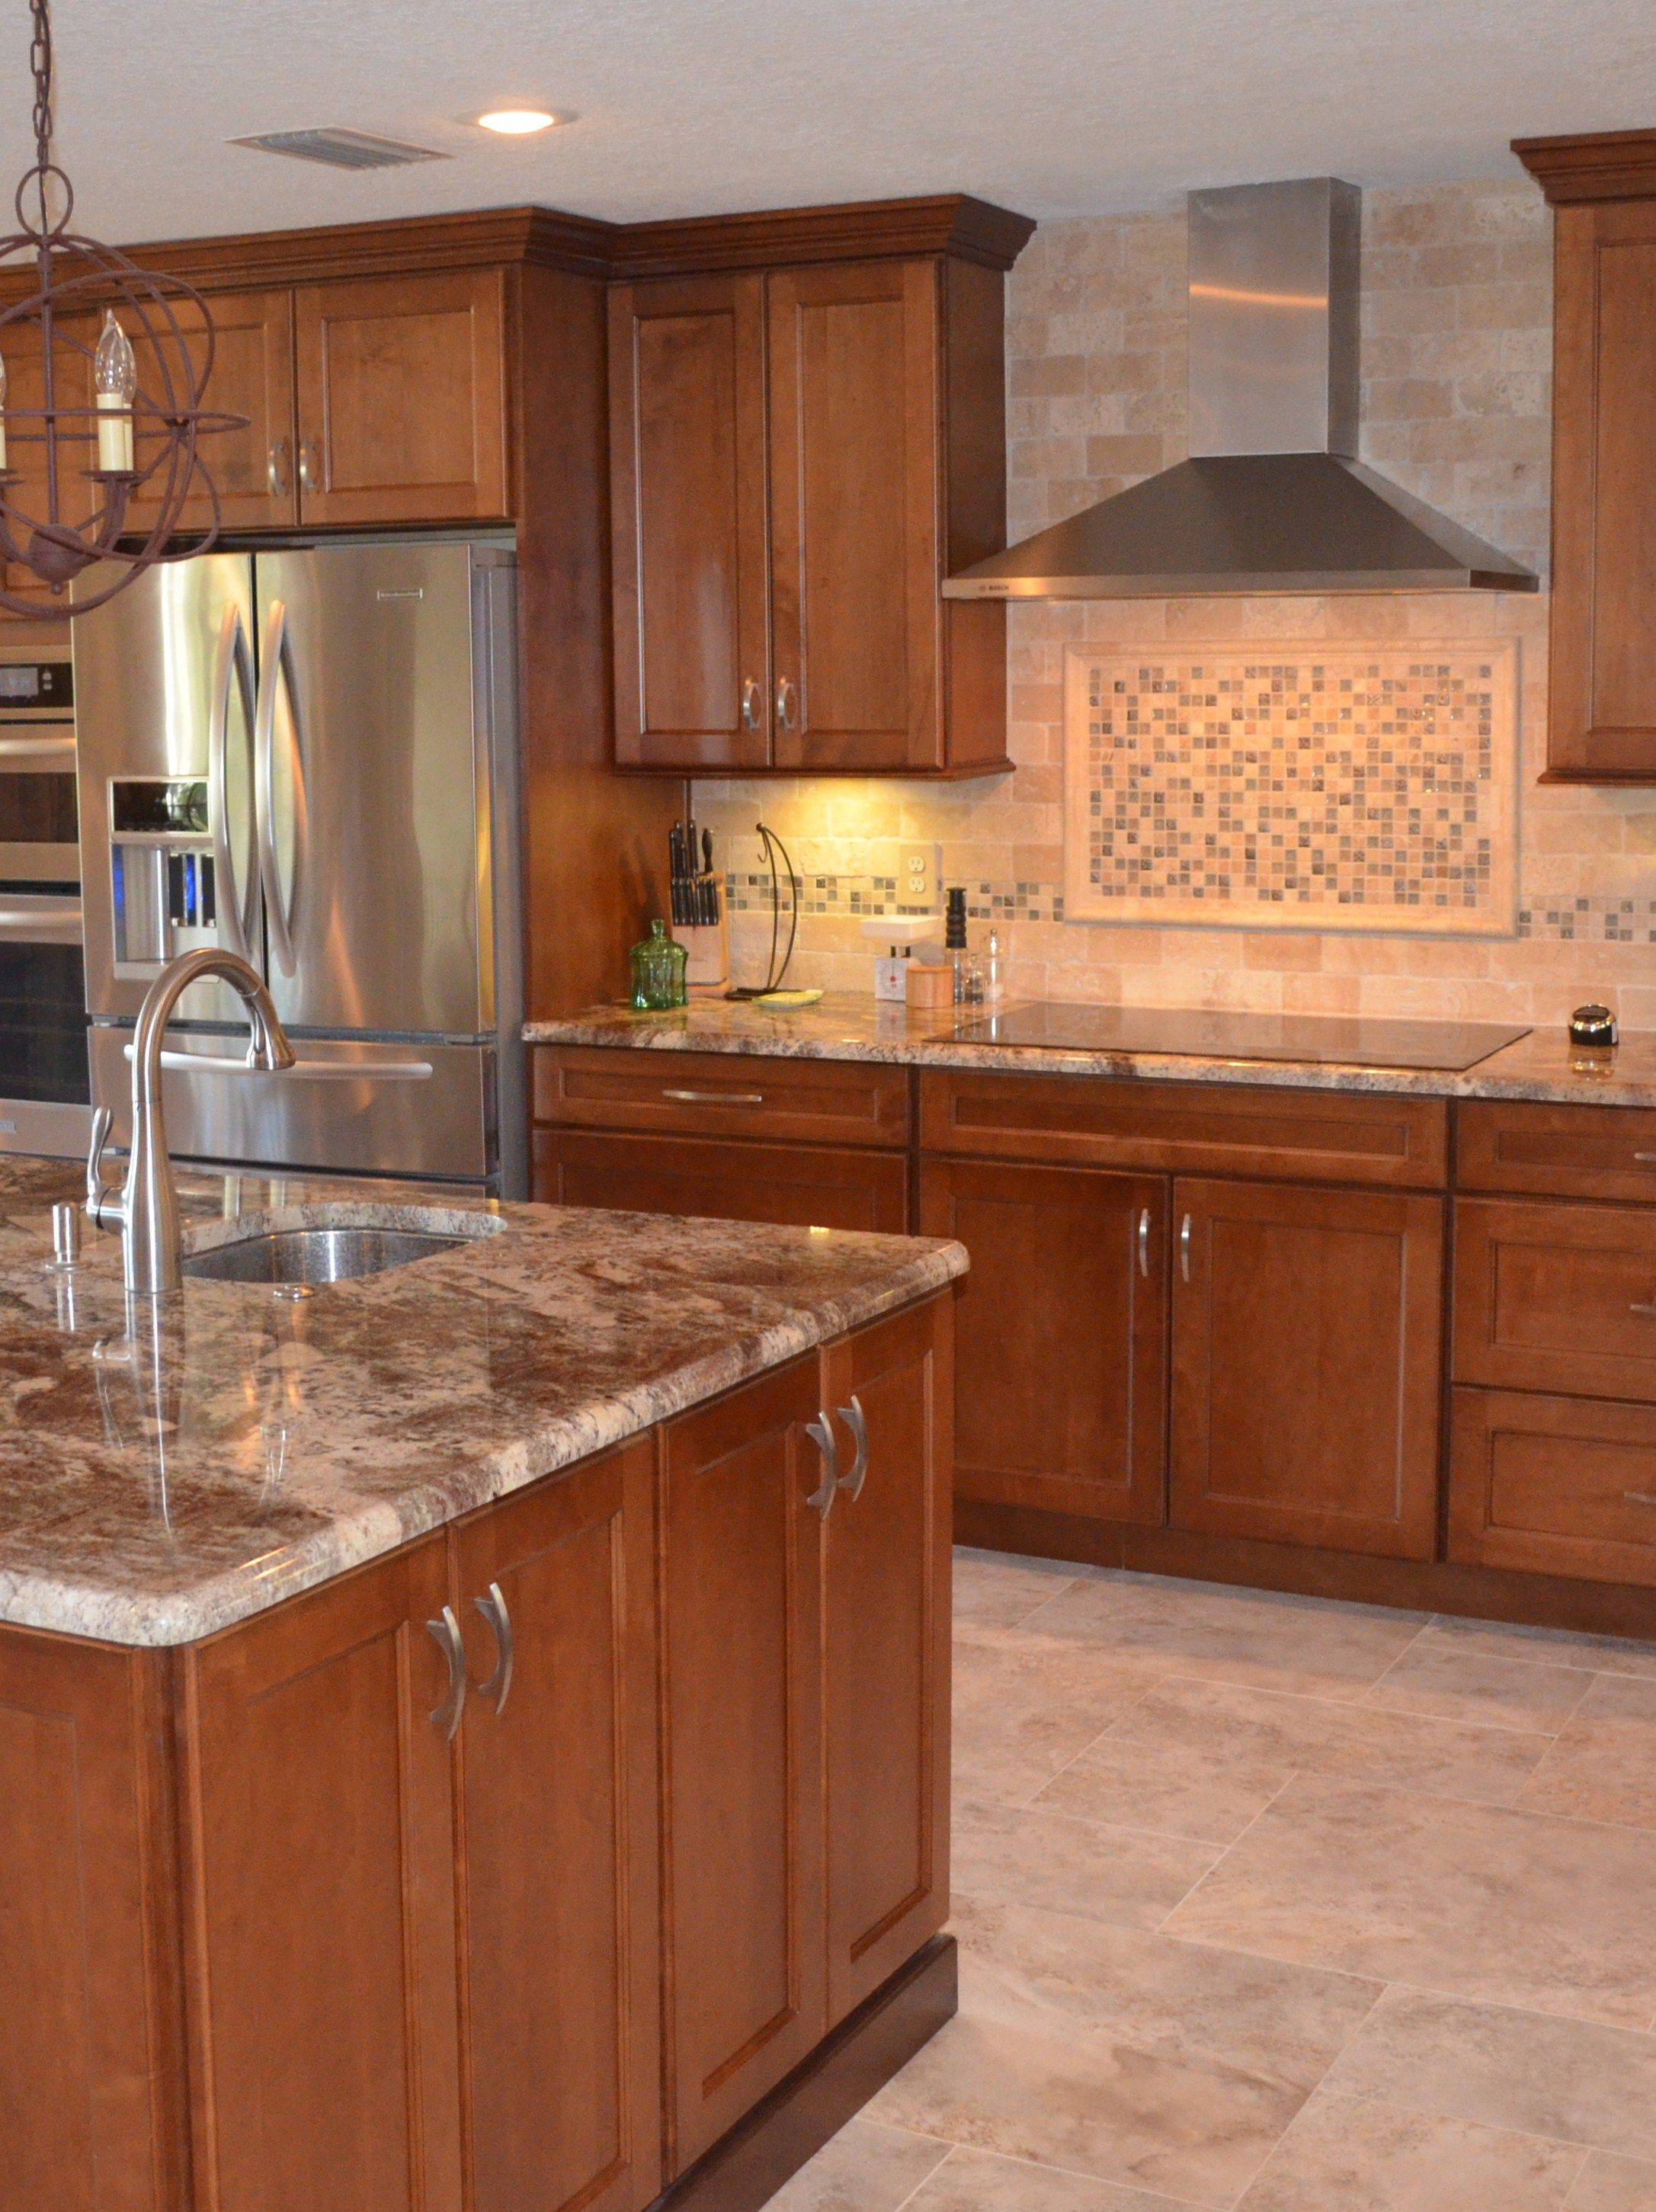 Complete Kitchen remodel by Leverette, Midcontinent ...